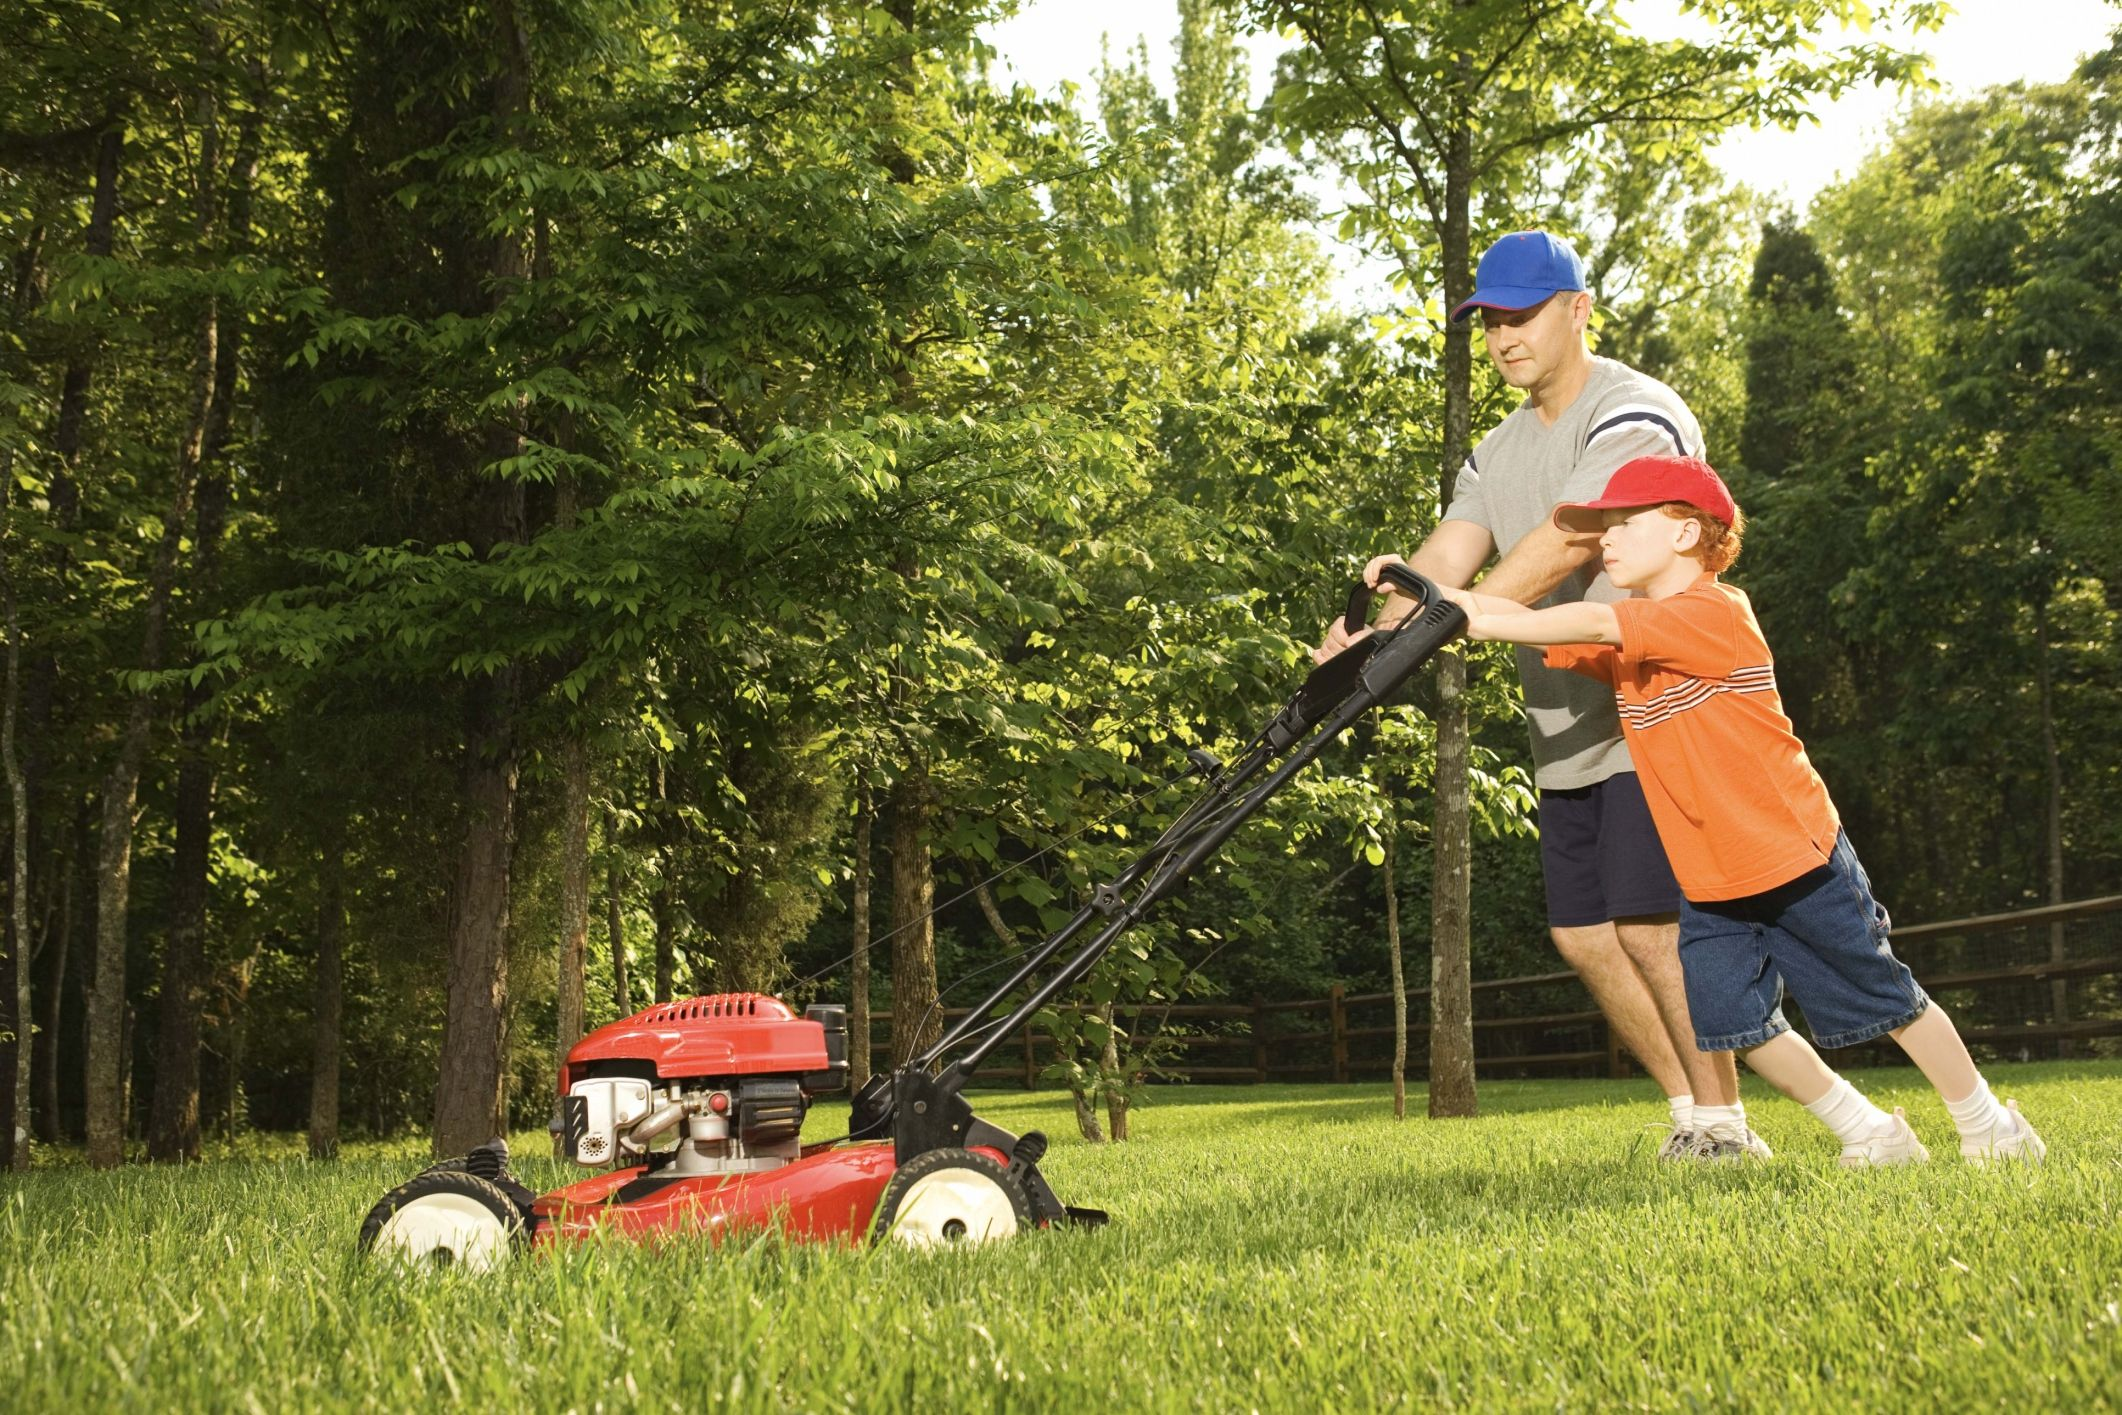 Is Your Lawn Mower Right For You? | Lawn, Lawn mower ...